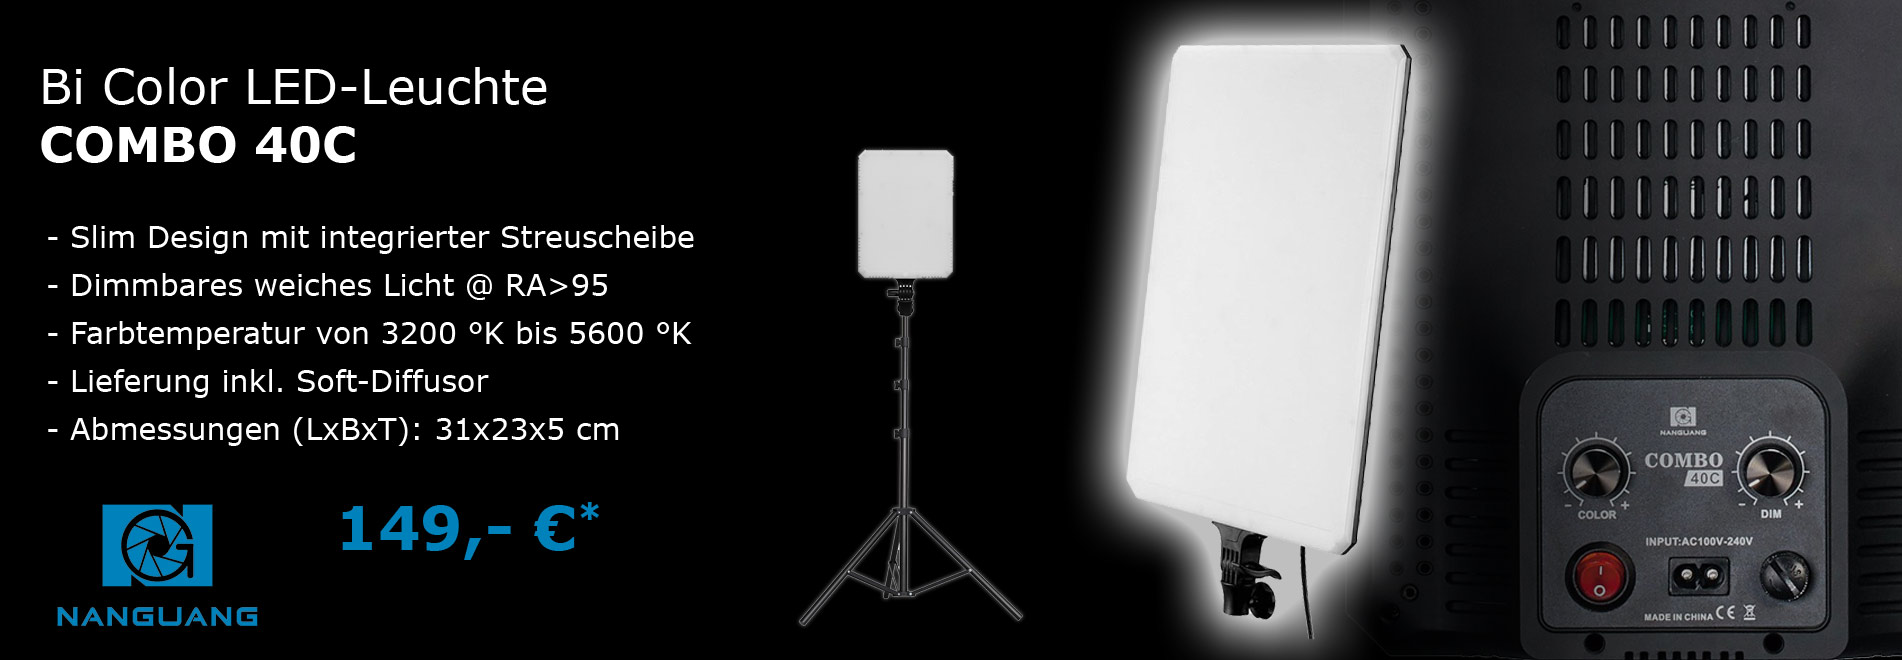 NANGUANG LED Fotostudio-Lampe